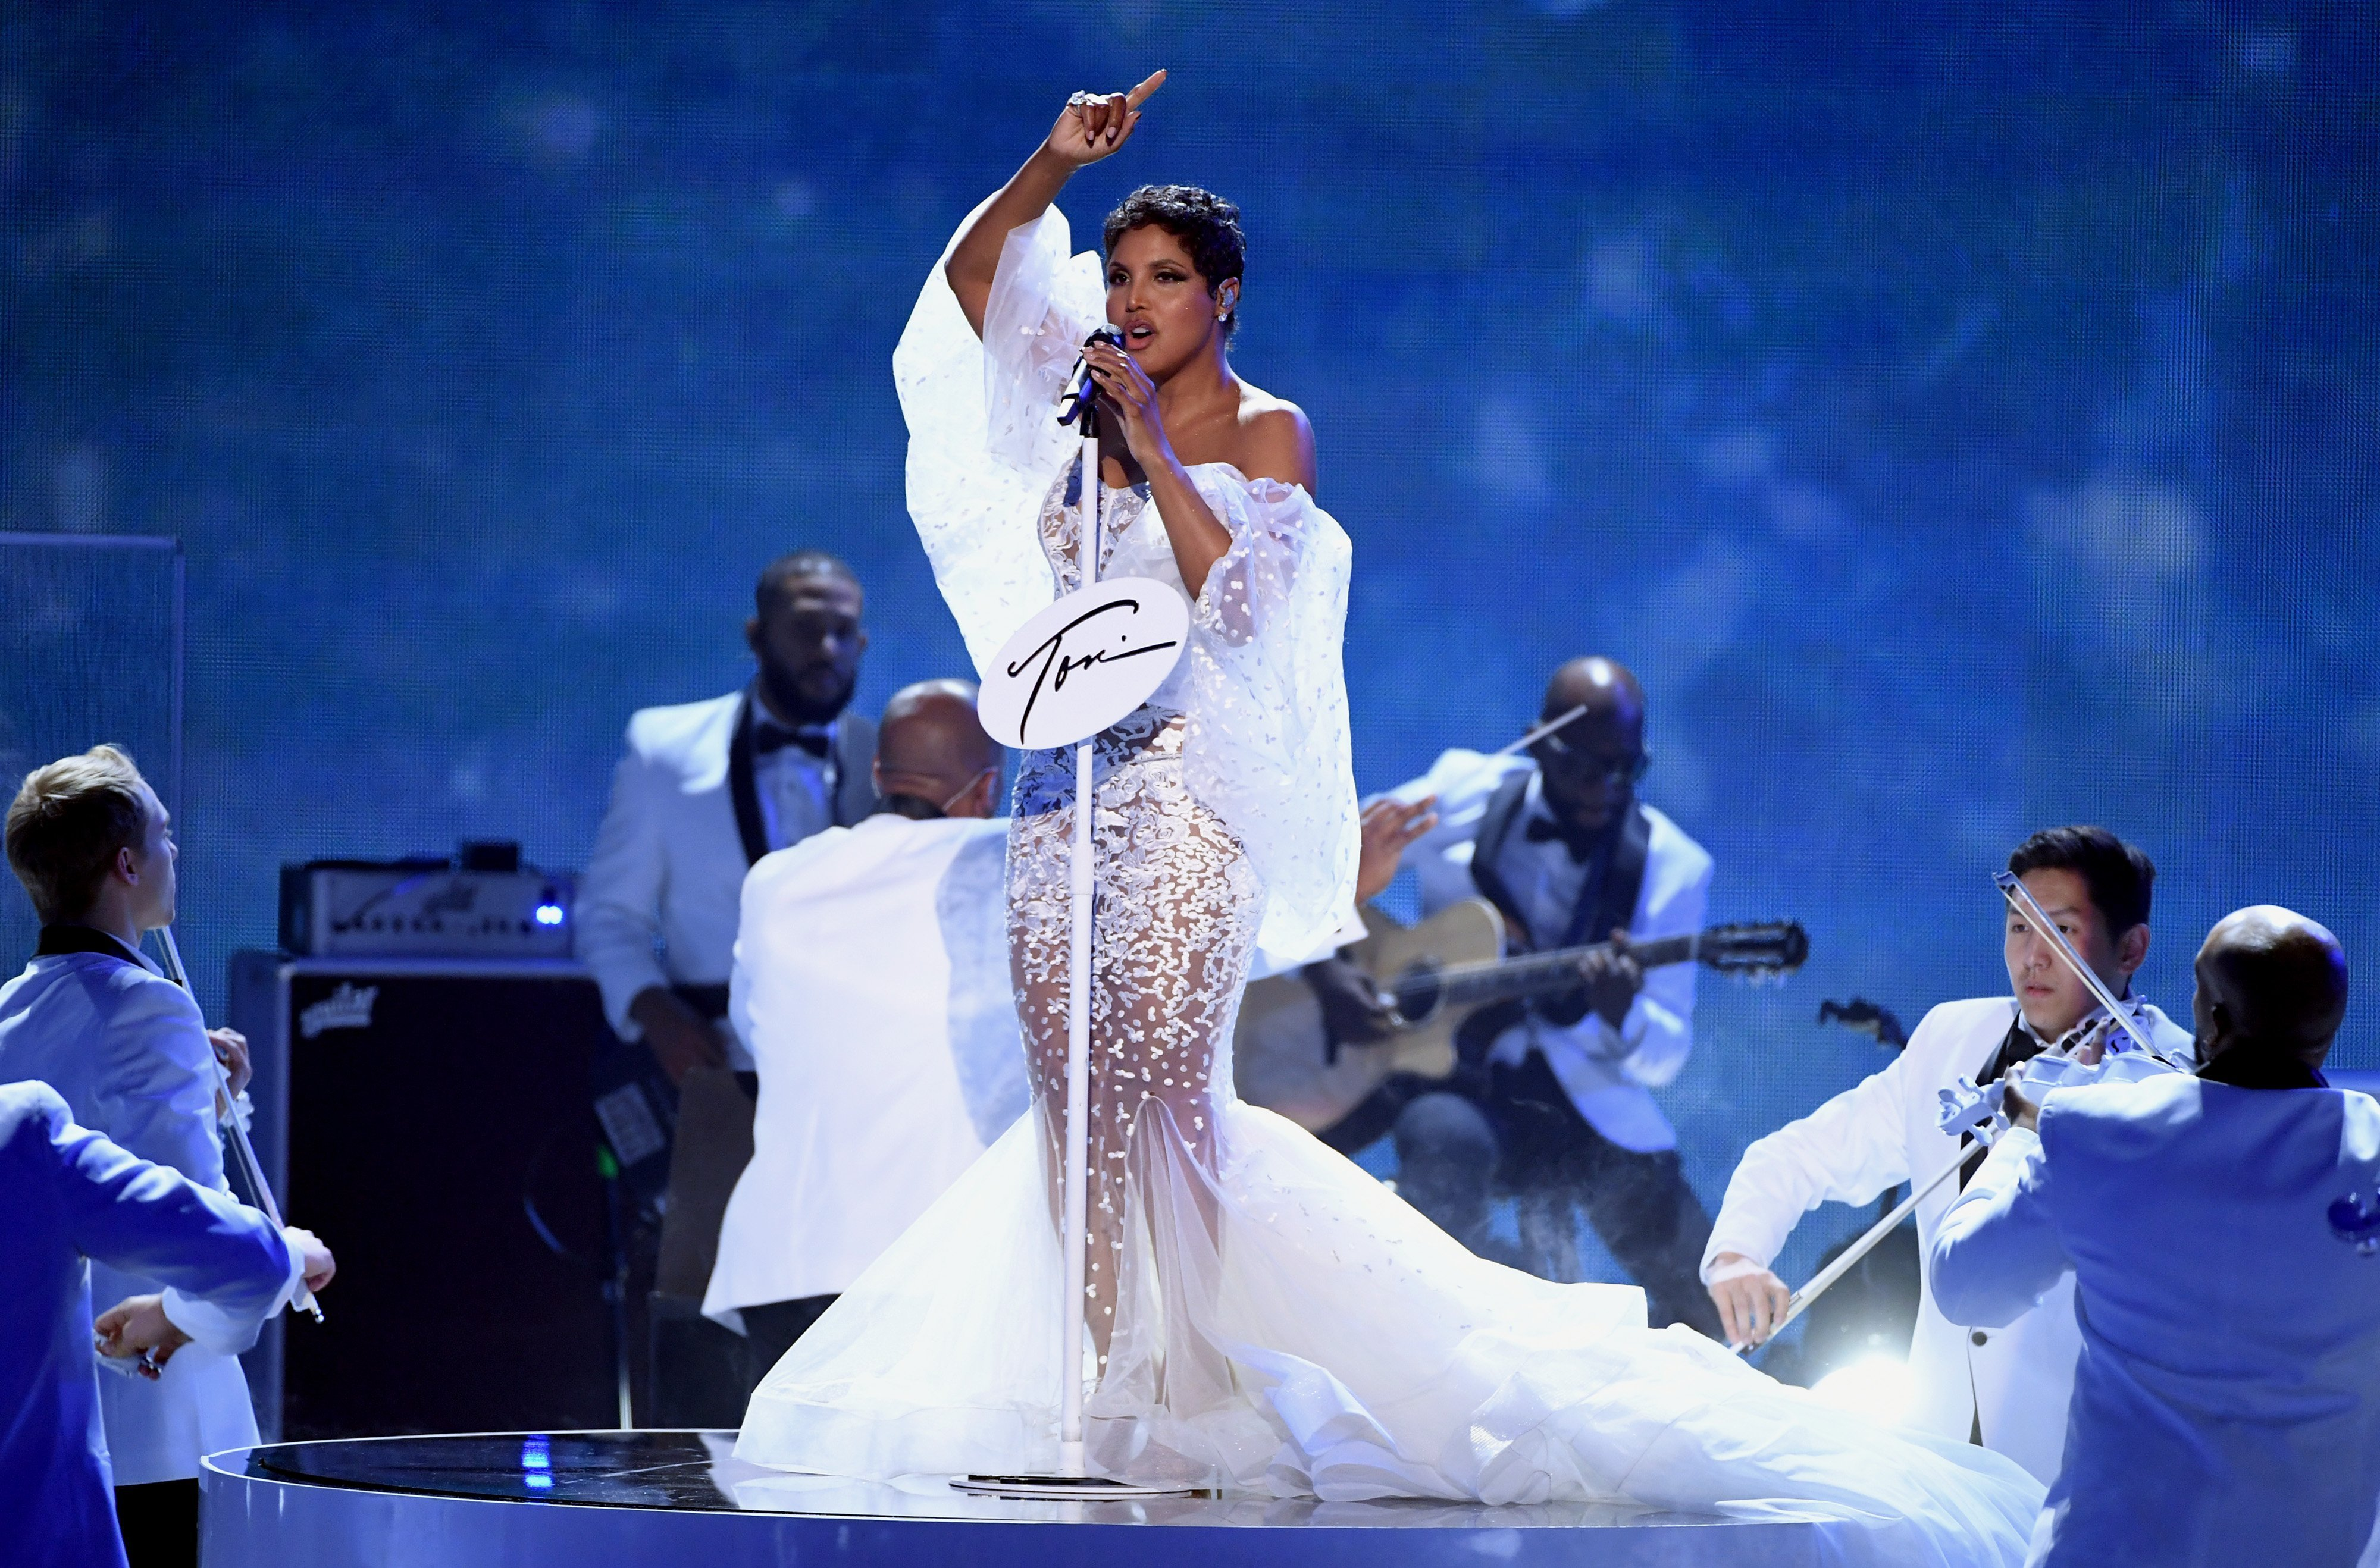 Toni Braxton performs onstage during the 2019 American Music Awards at Microsoft Theater on November 24, 2019, in Los Angeles, California. | Source: Getty Images.